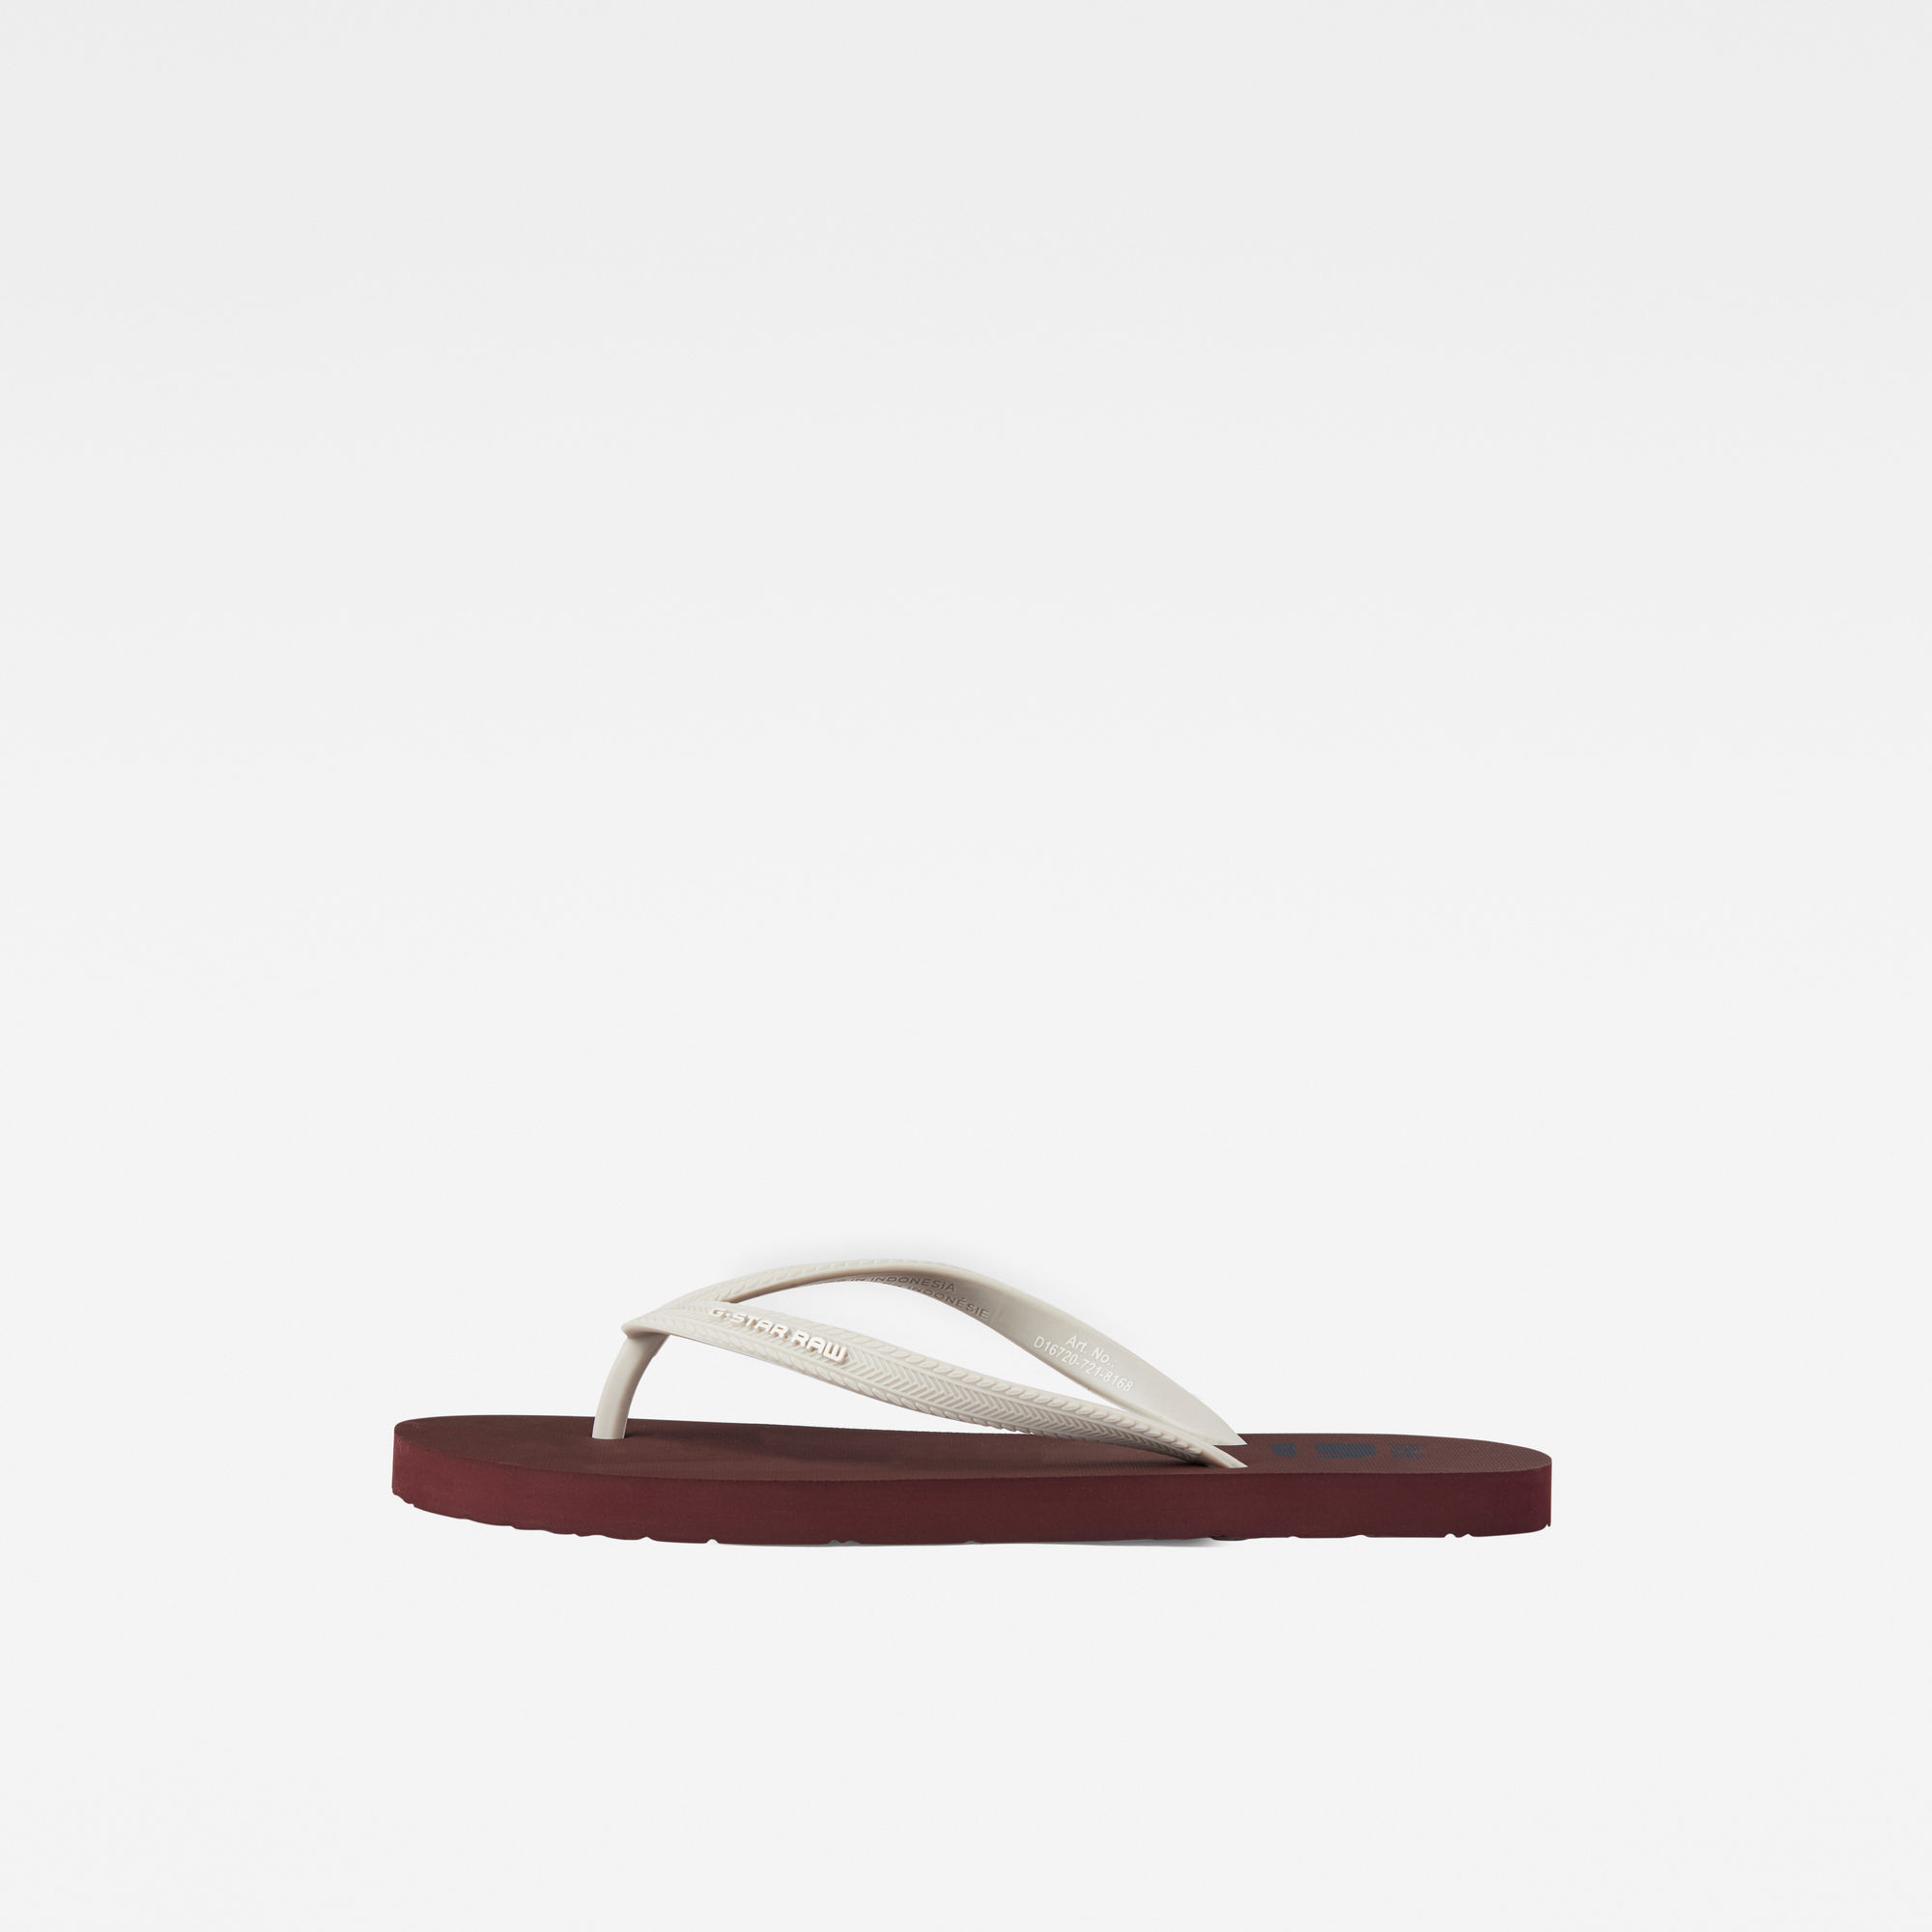 G-Star RAW Dames Carnic Slippers Rood